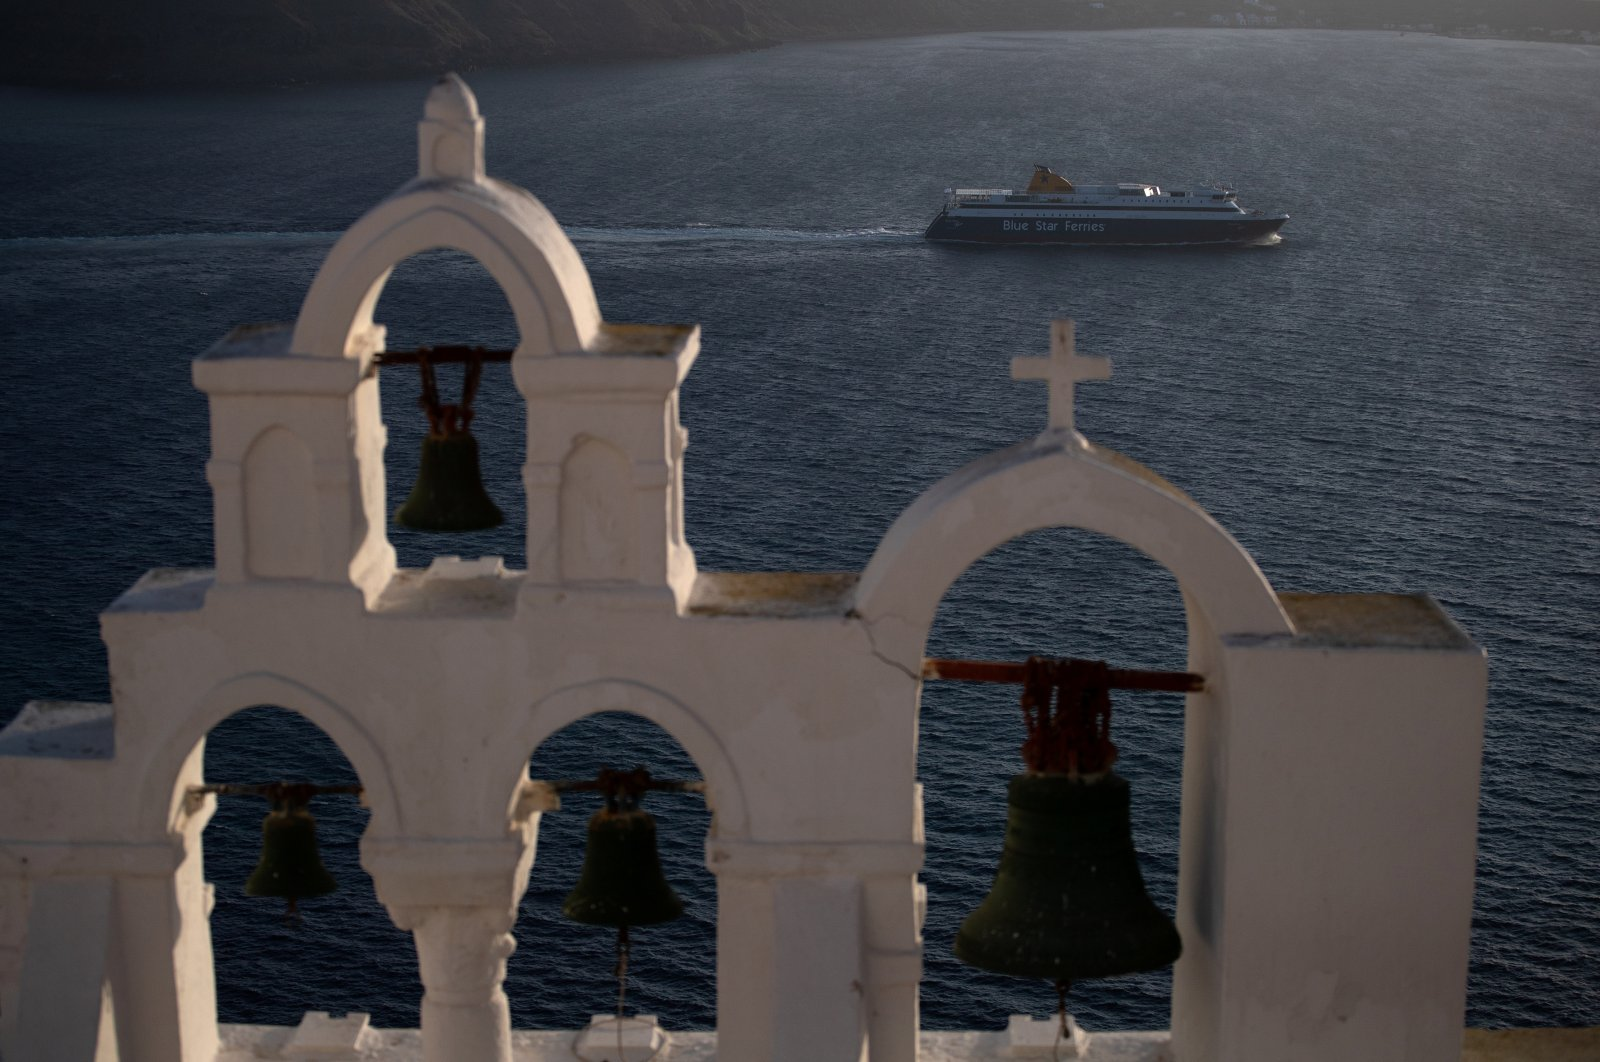 A ferry sails next to the caldera of Oia, following the outbreak of COVID-19, on the island of Santorini, Greece, May 6, 2020. (Reuters Photo)